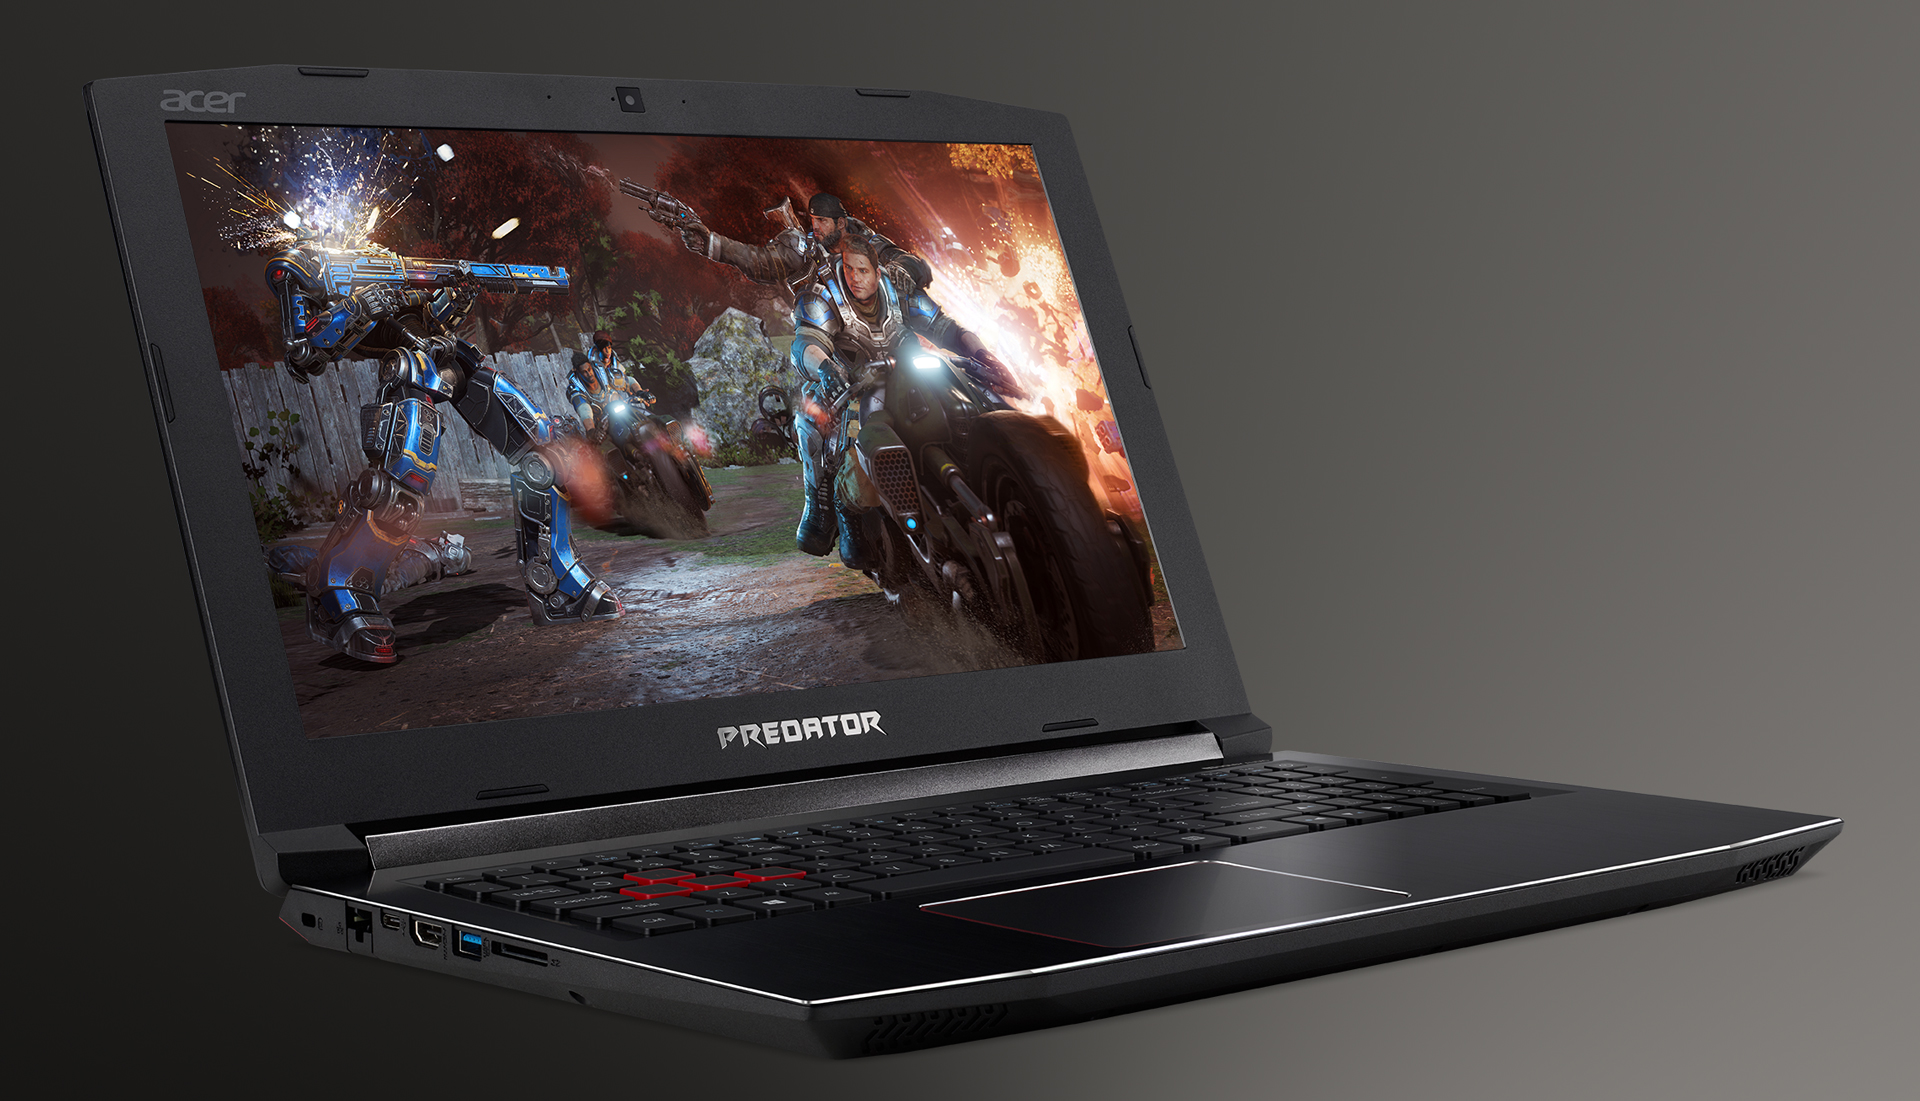 ACER.GELECTRONIC.COM